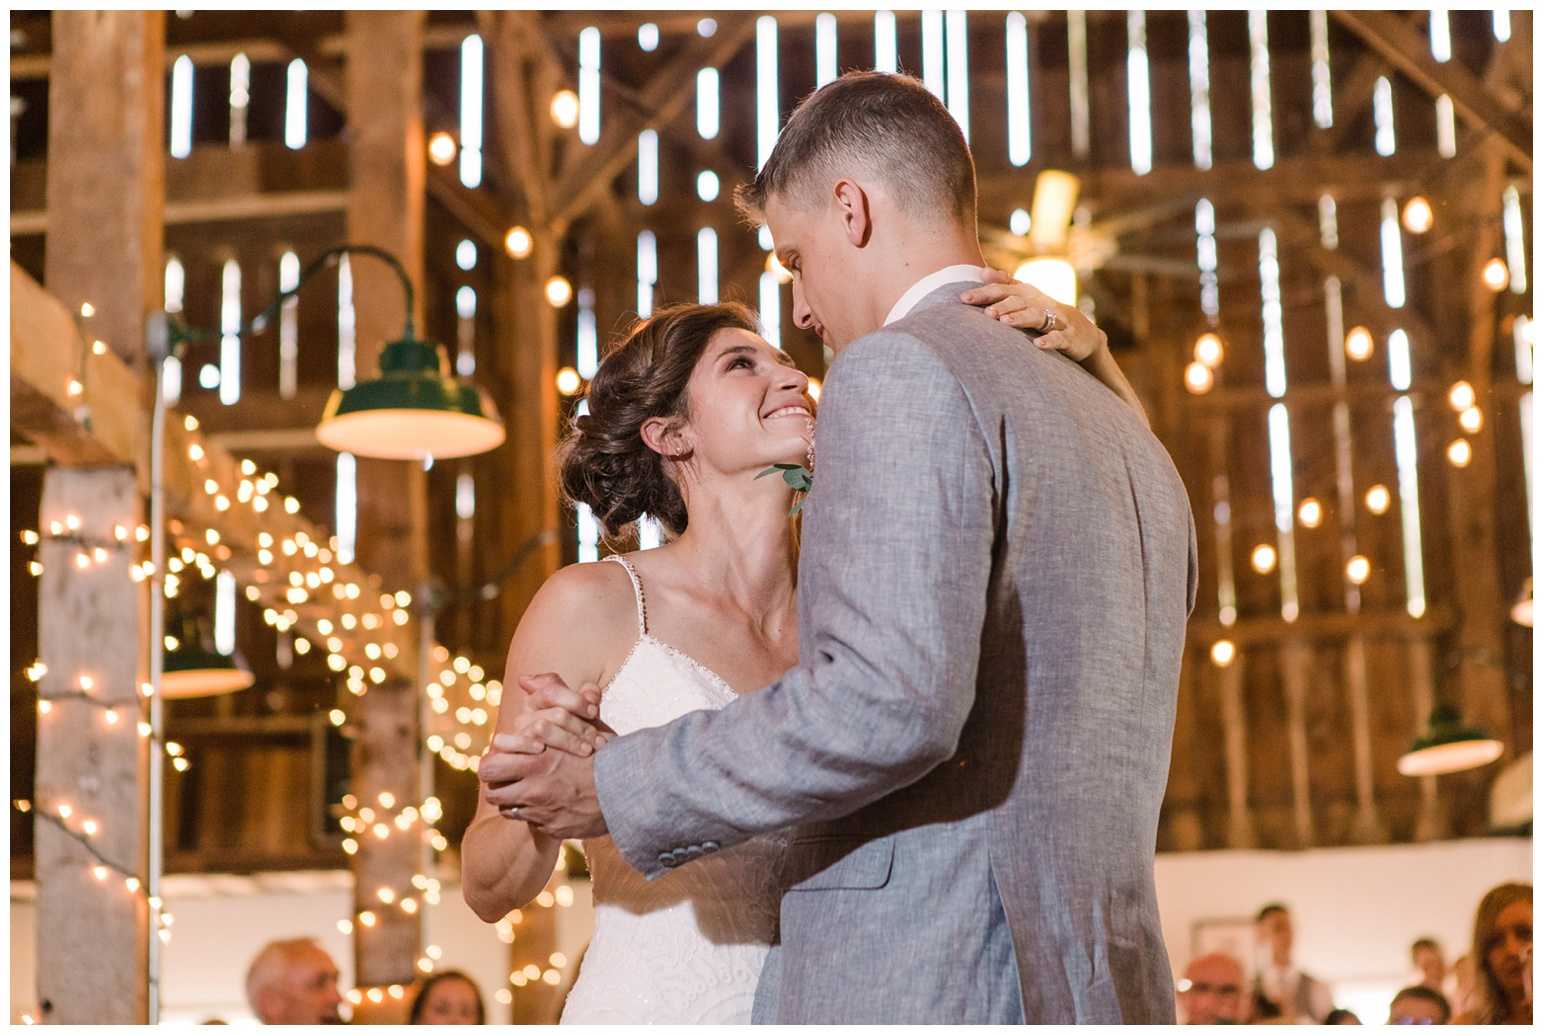 bride and groom dancing in barn reception at worsell manor - summer wedding inspiration